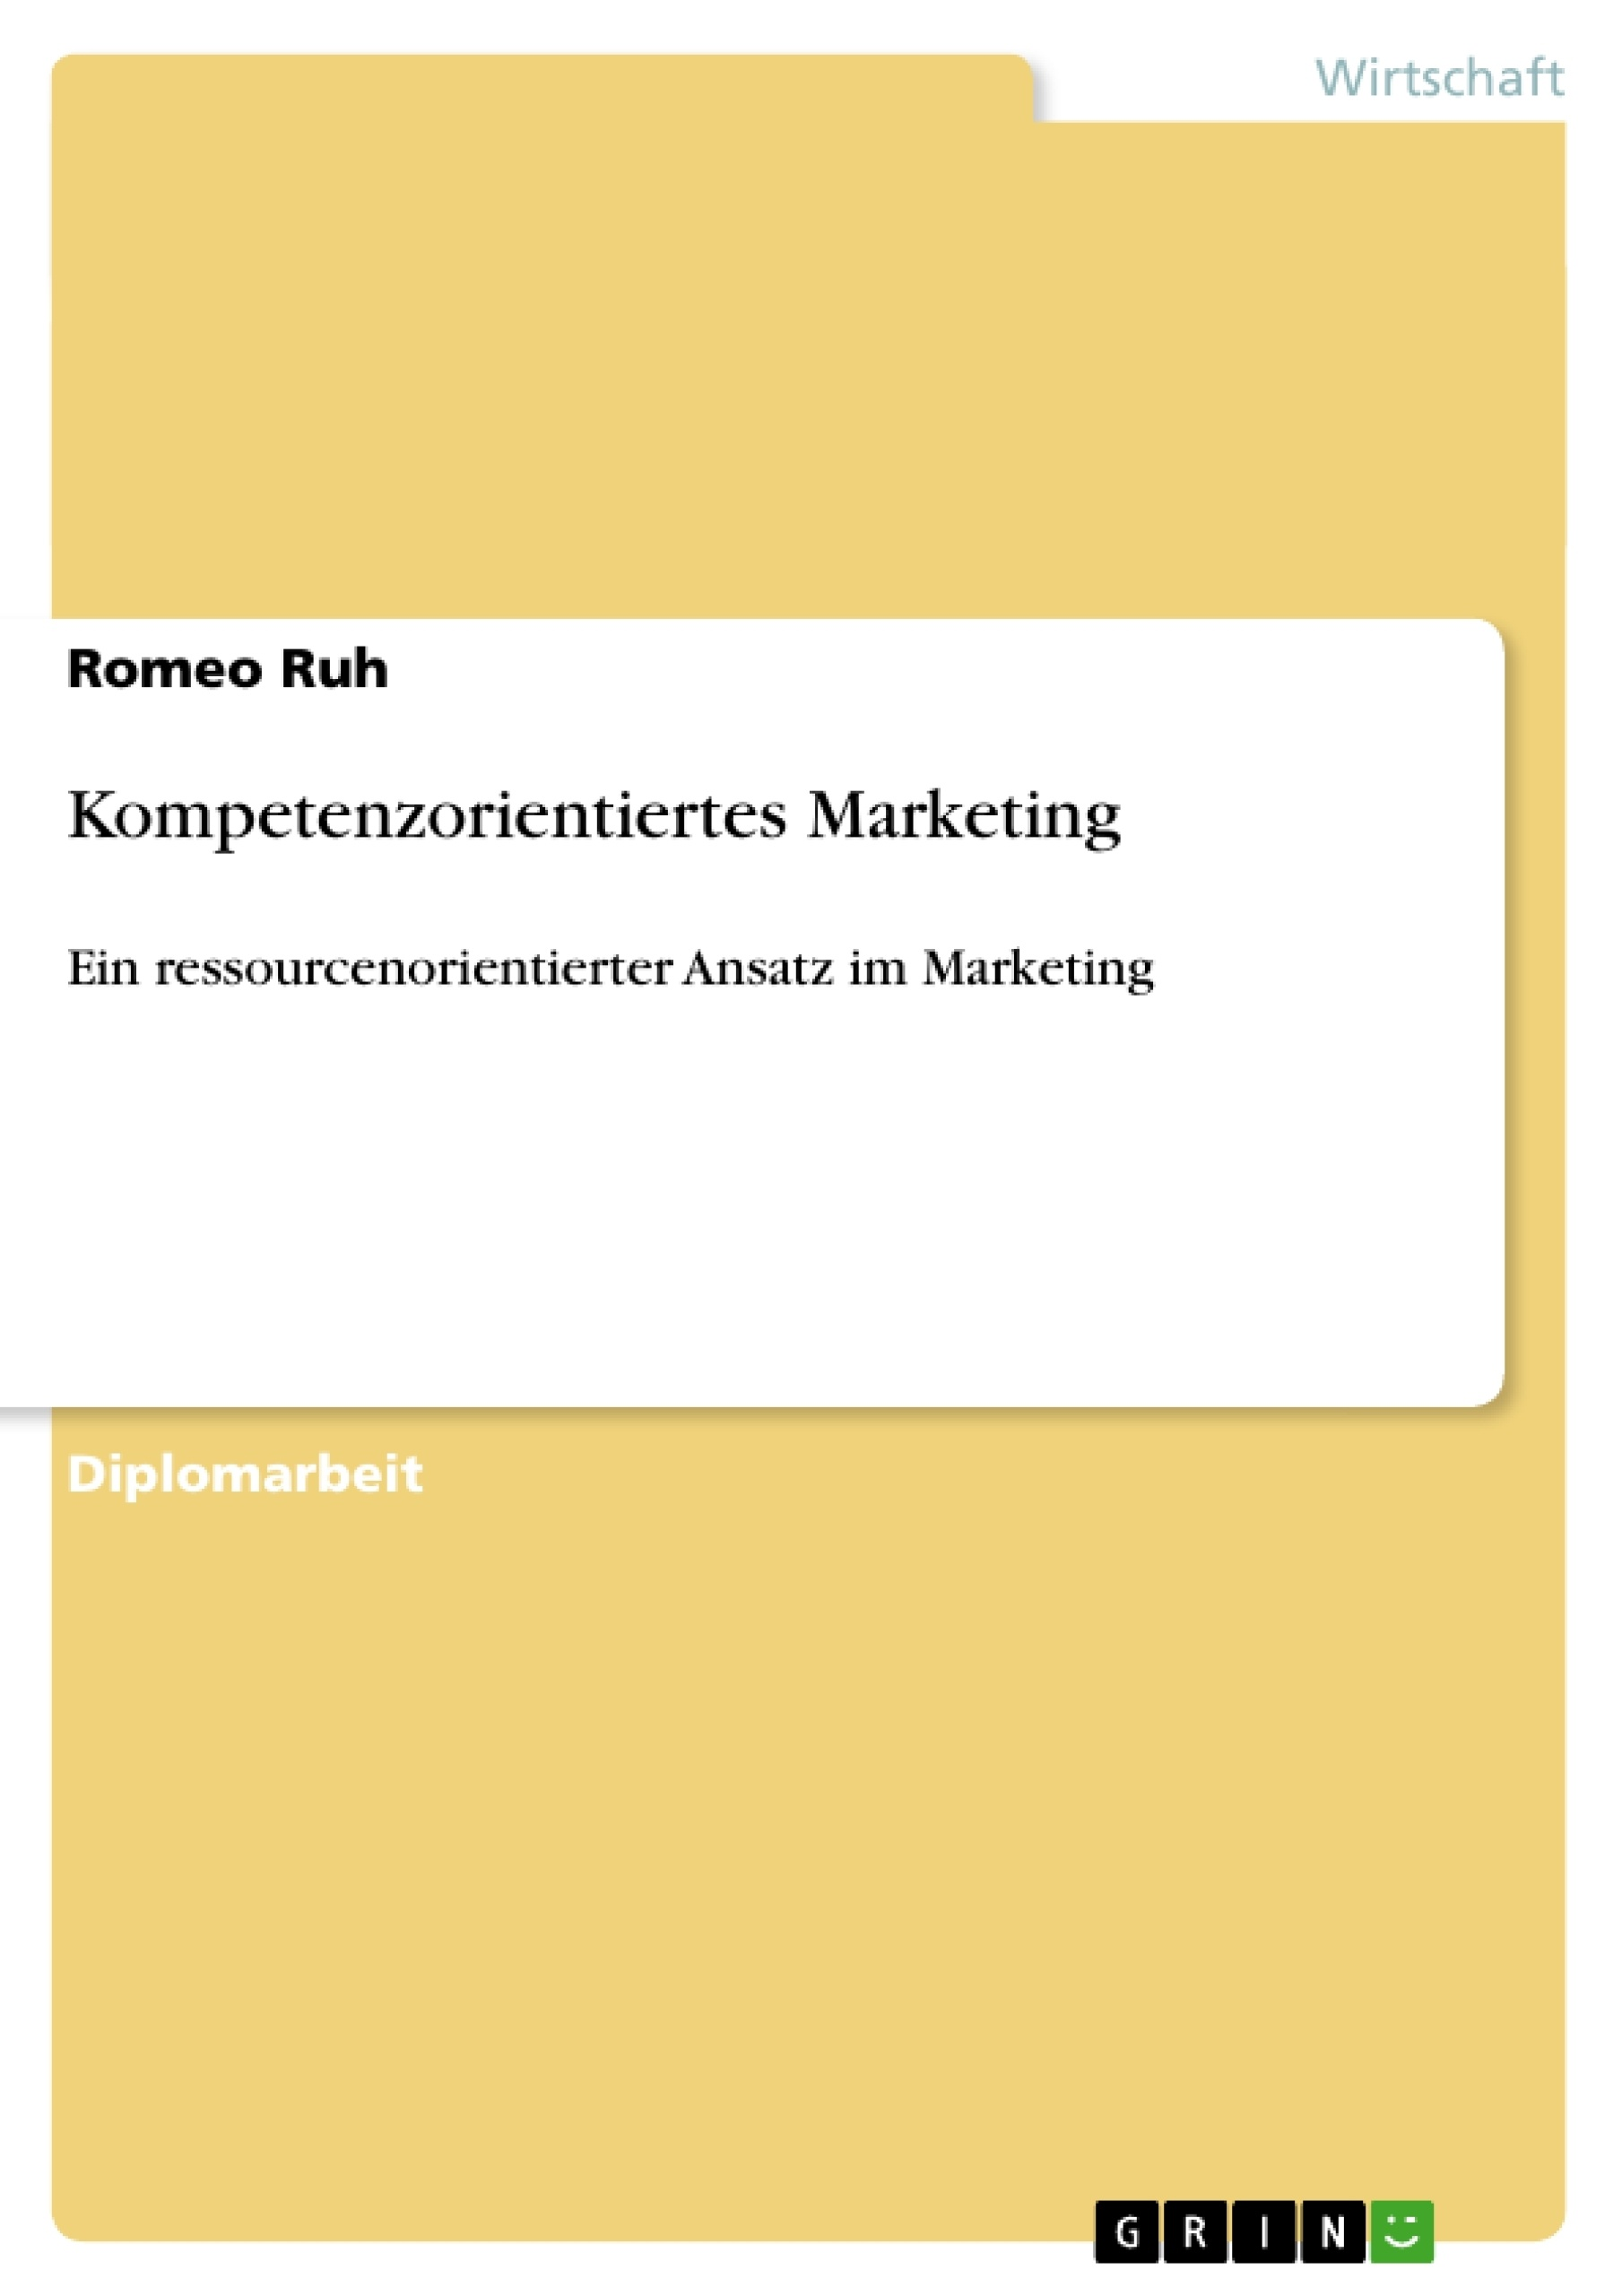 Titel: Kompetenzorientiertes Marketing